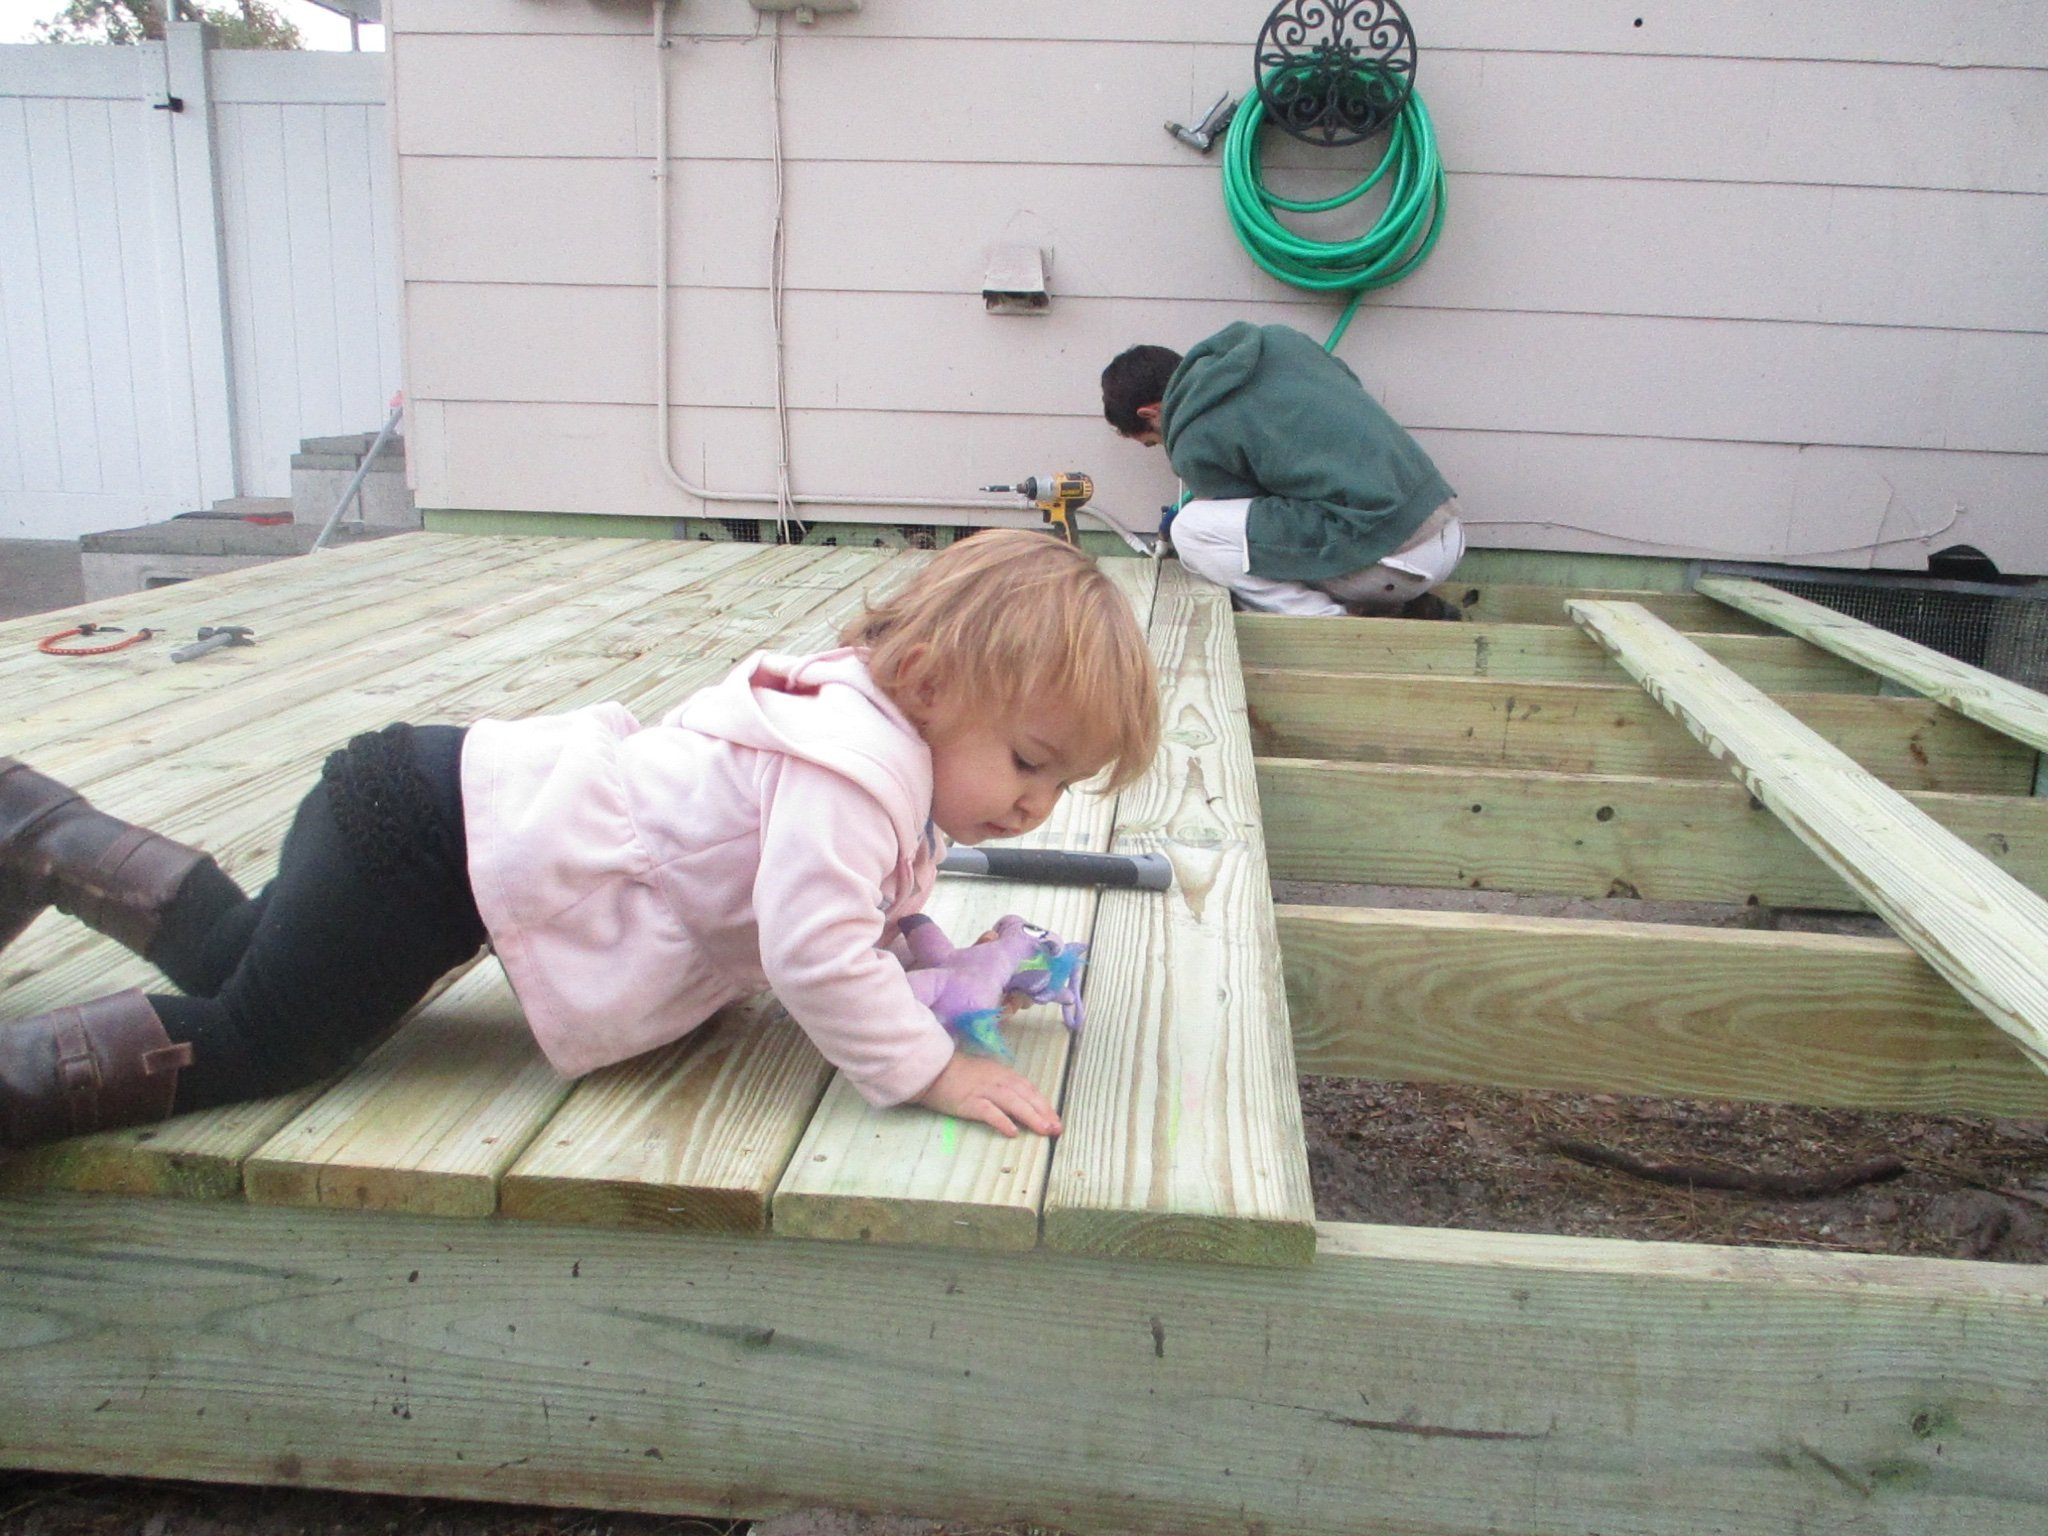 drilling down the deck boards